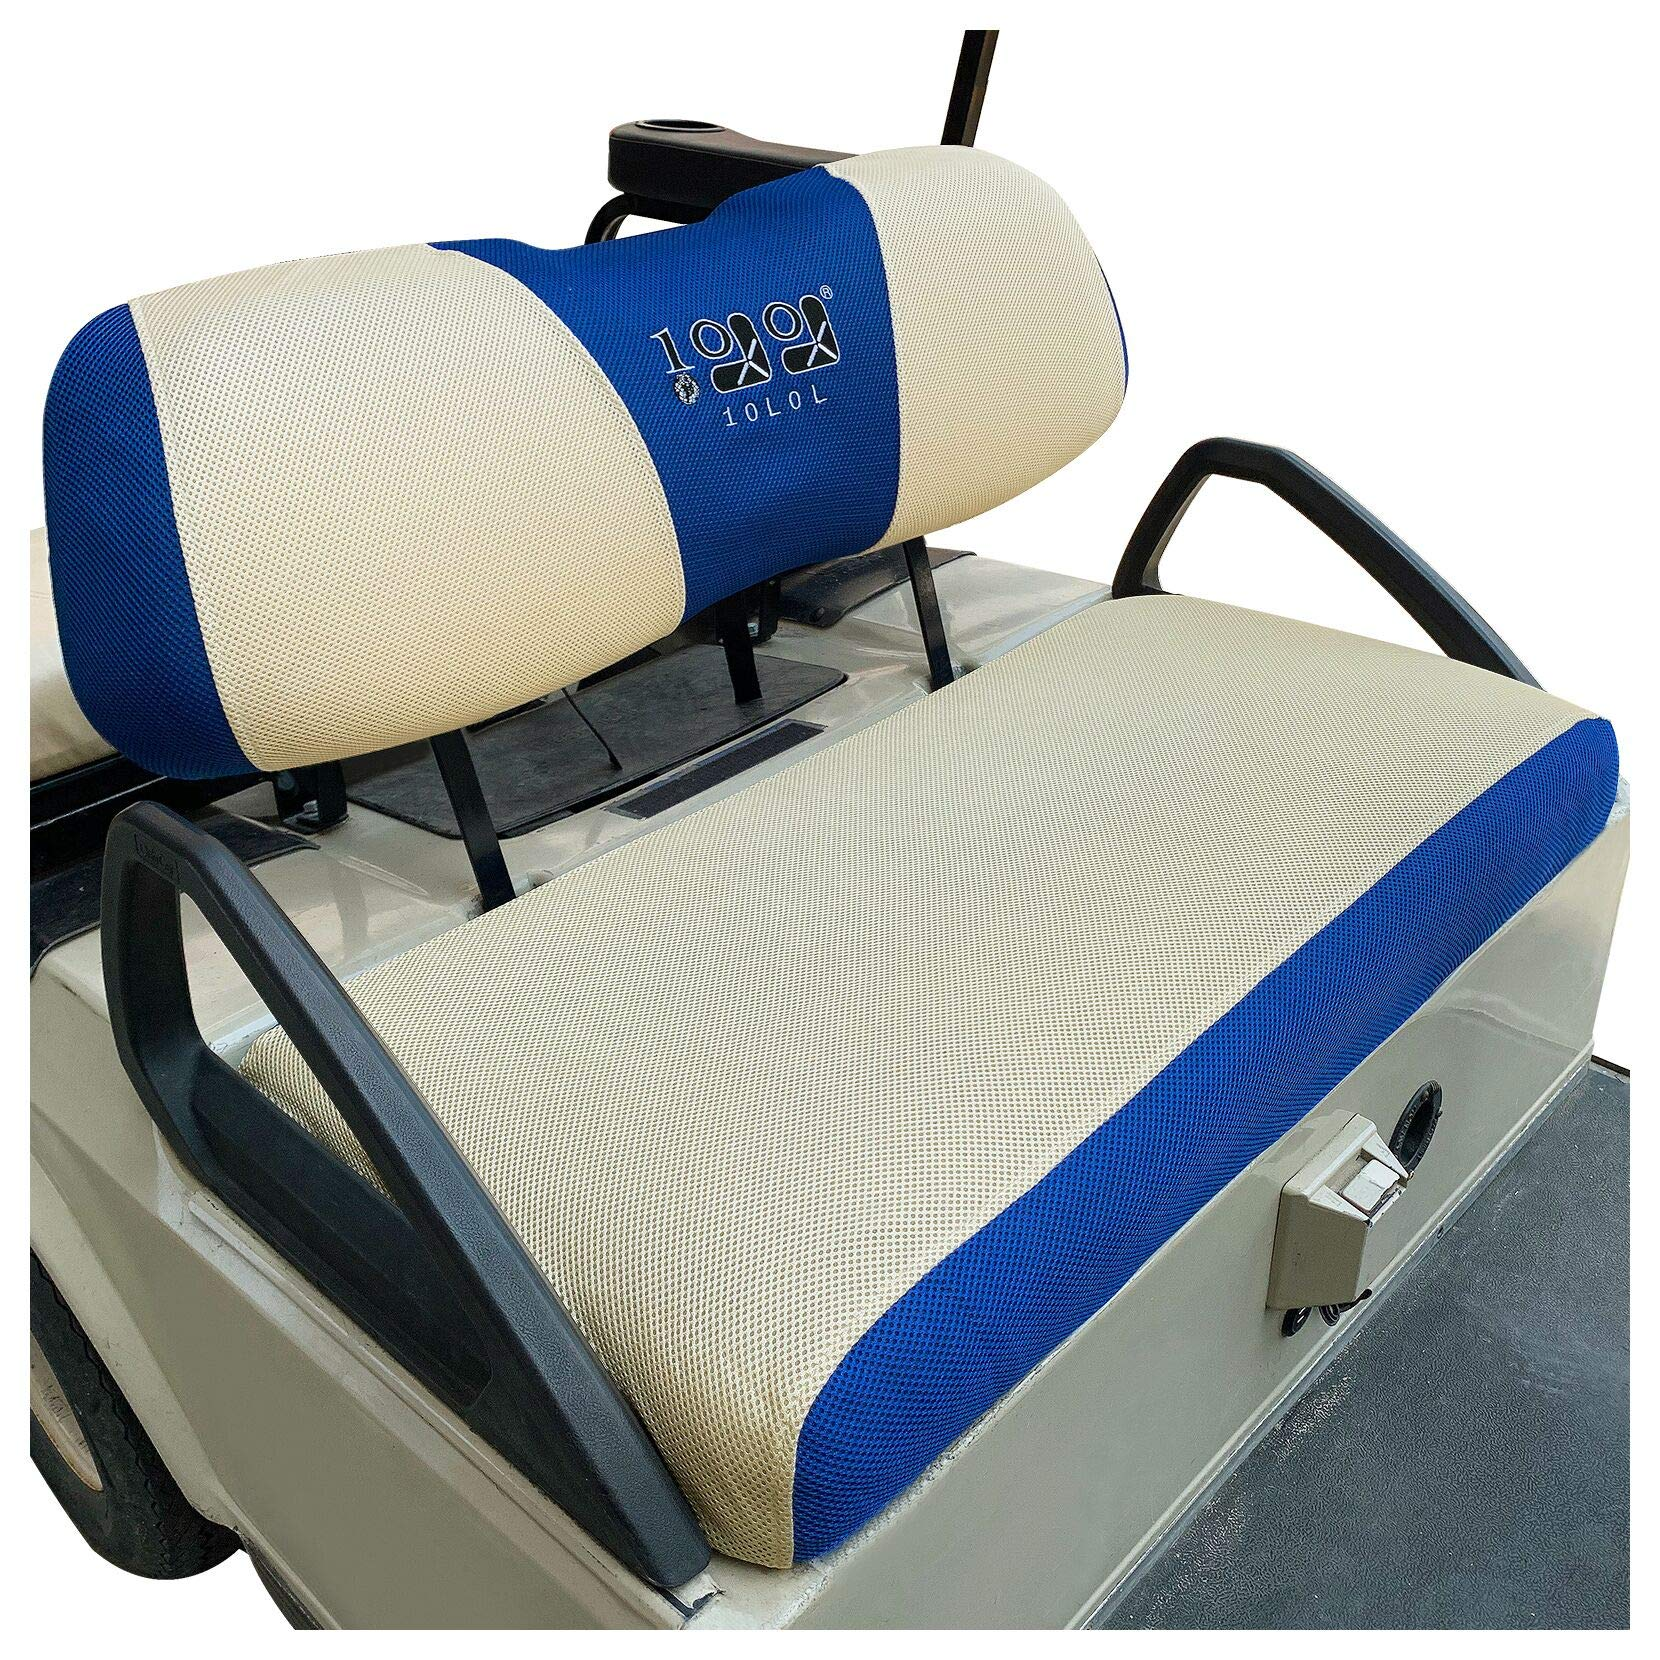 10L0L Golf Cart Bench Seat Cover Set, Washable Polyester Mesh Cloth Fits Club Car DS & Precedent,Yamaha Electric Golf Carts by 10L0L